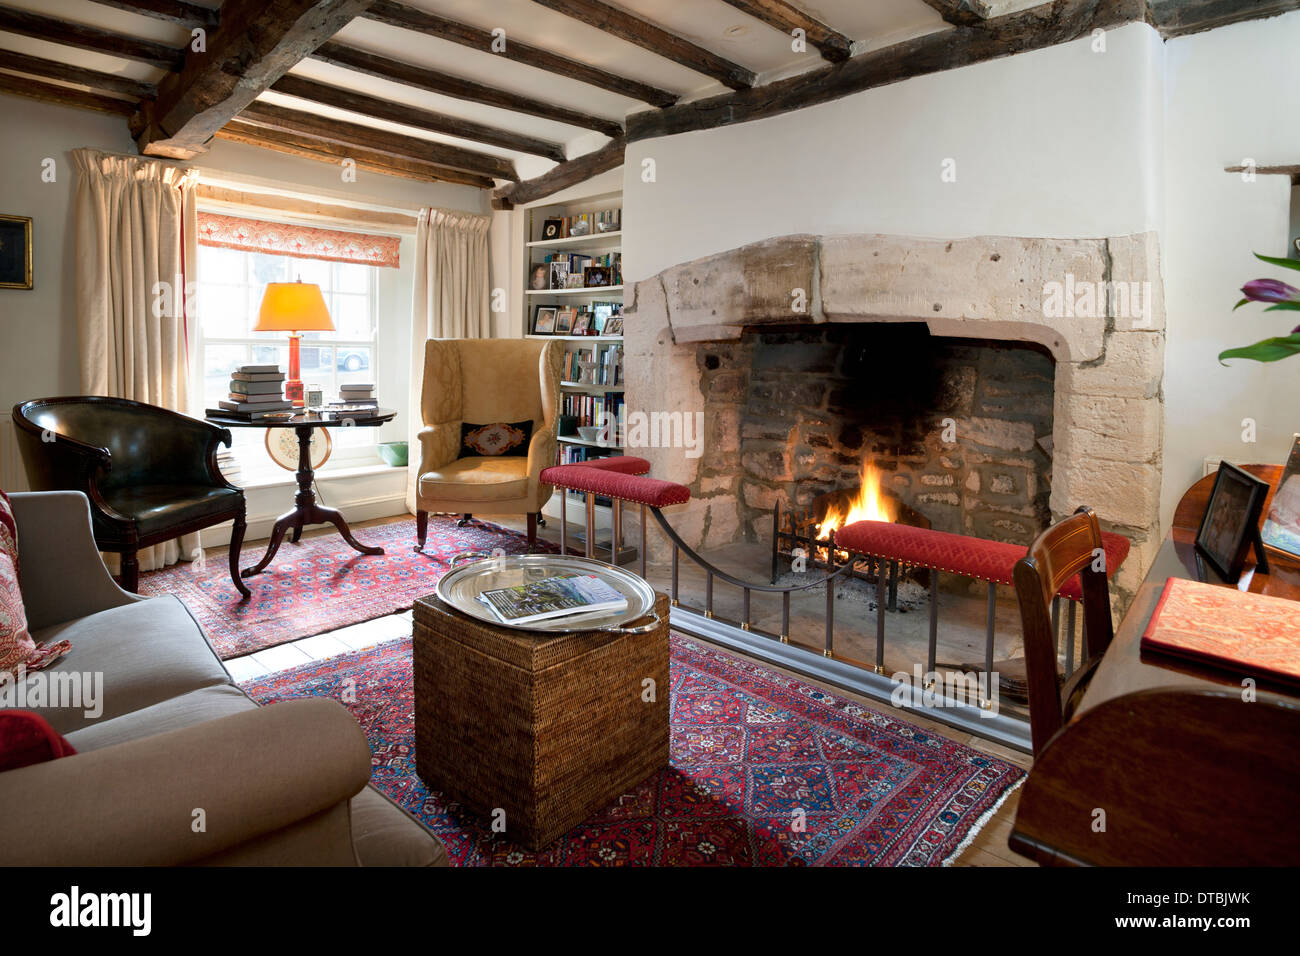 Period Living Room Large Open Fireplace In A Period Home Living Sitting Room Stock